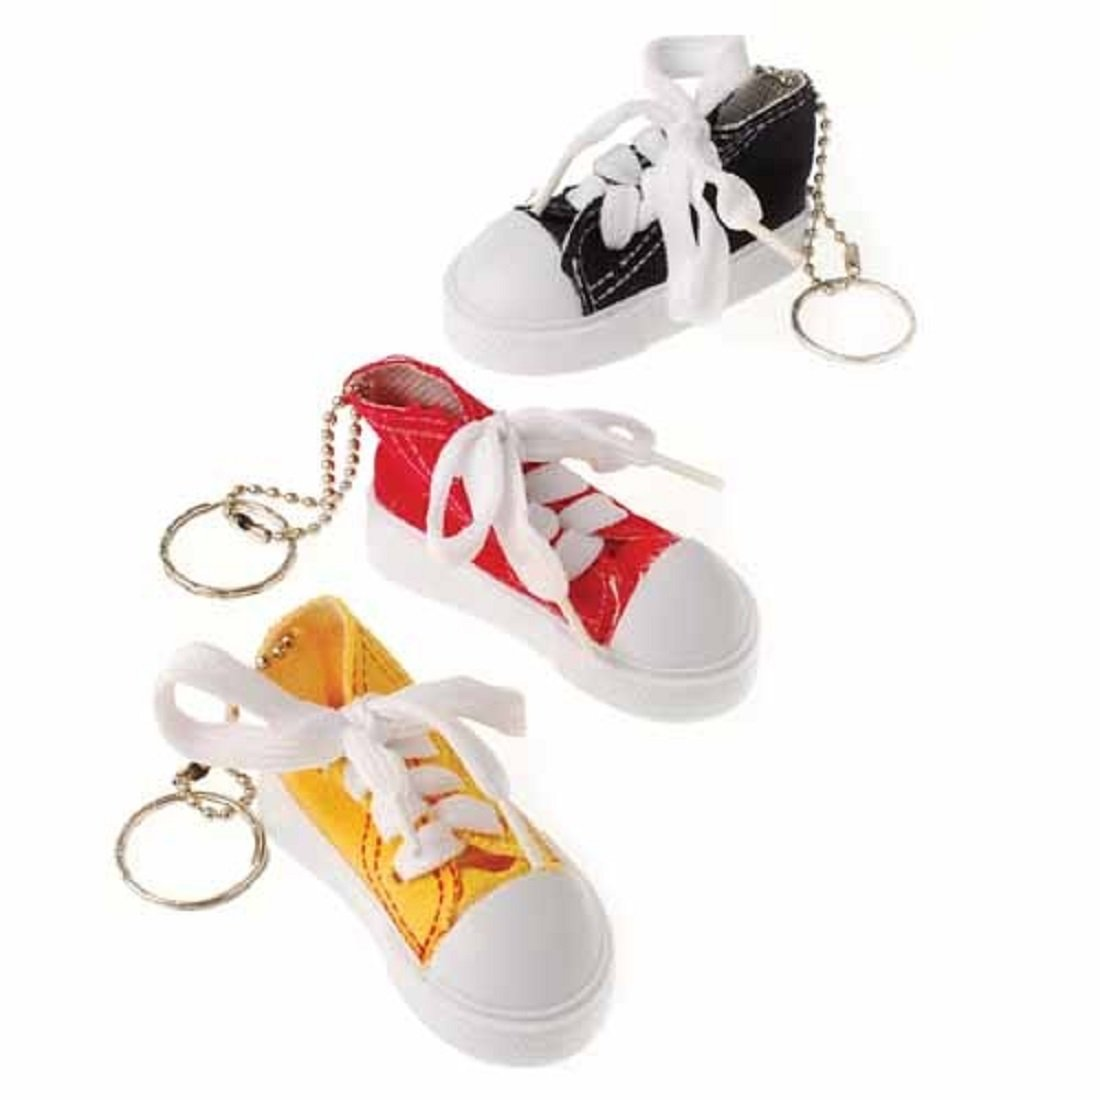 Lace Up Sneaker Key Chains Carnival Prize